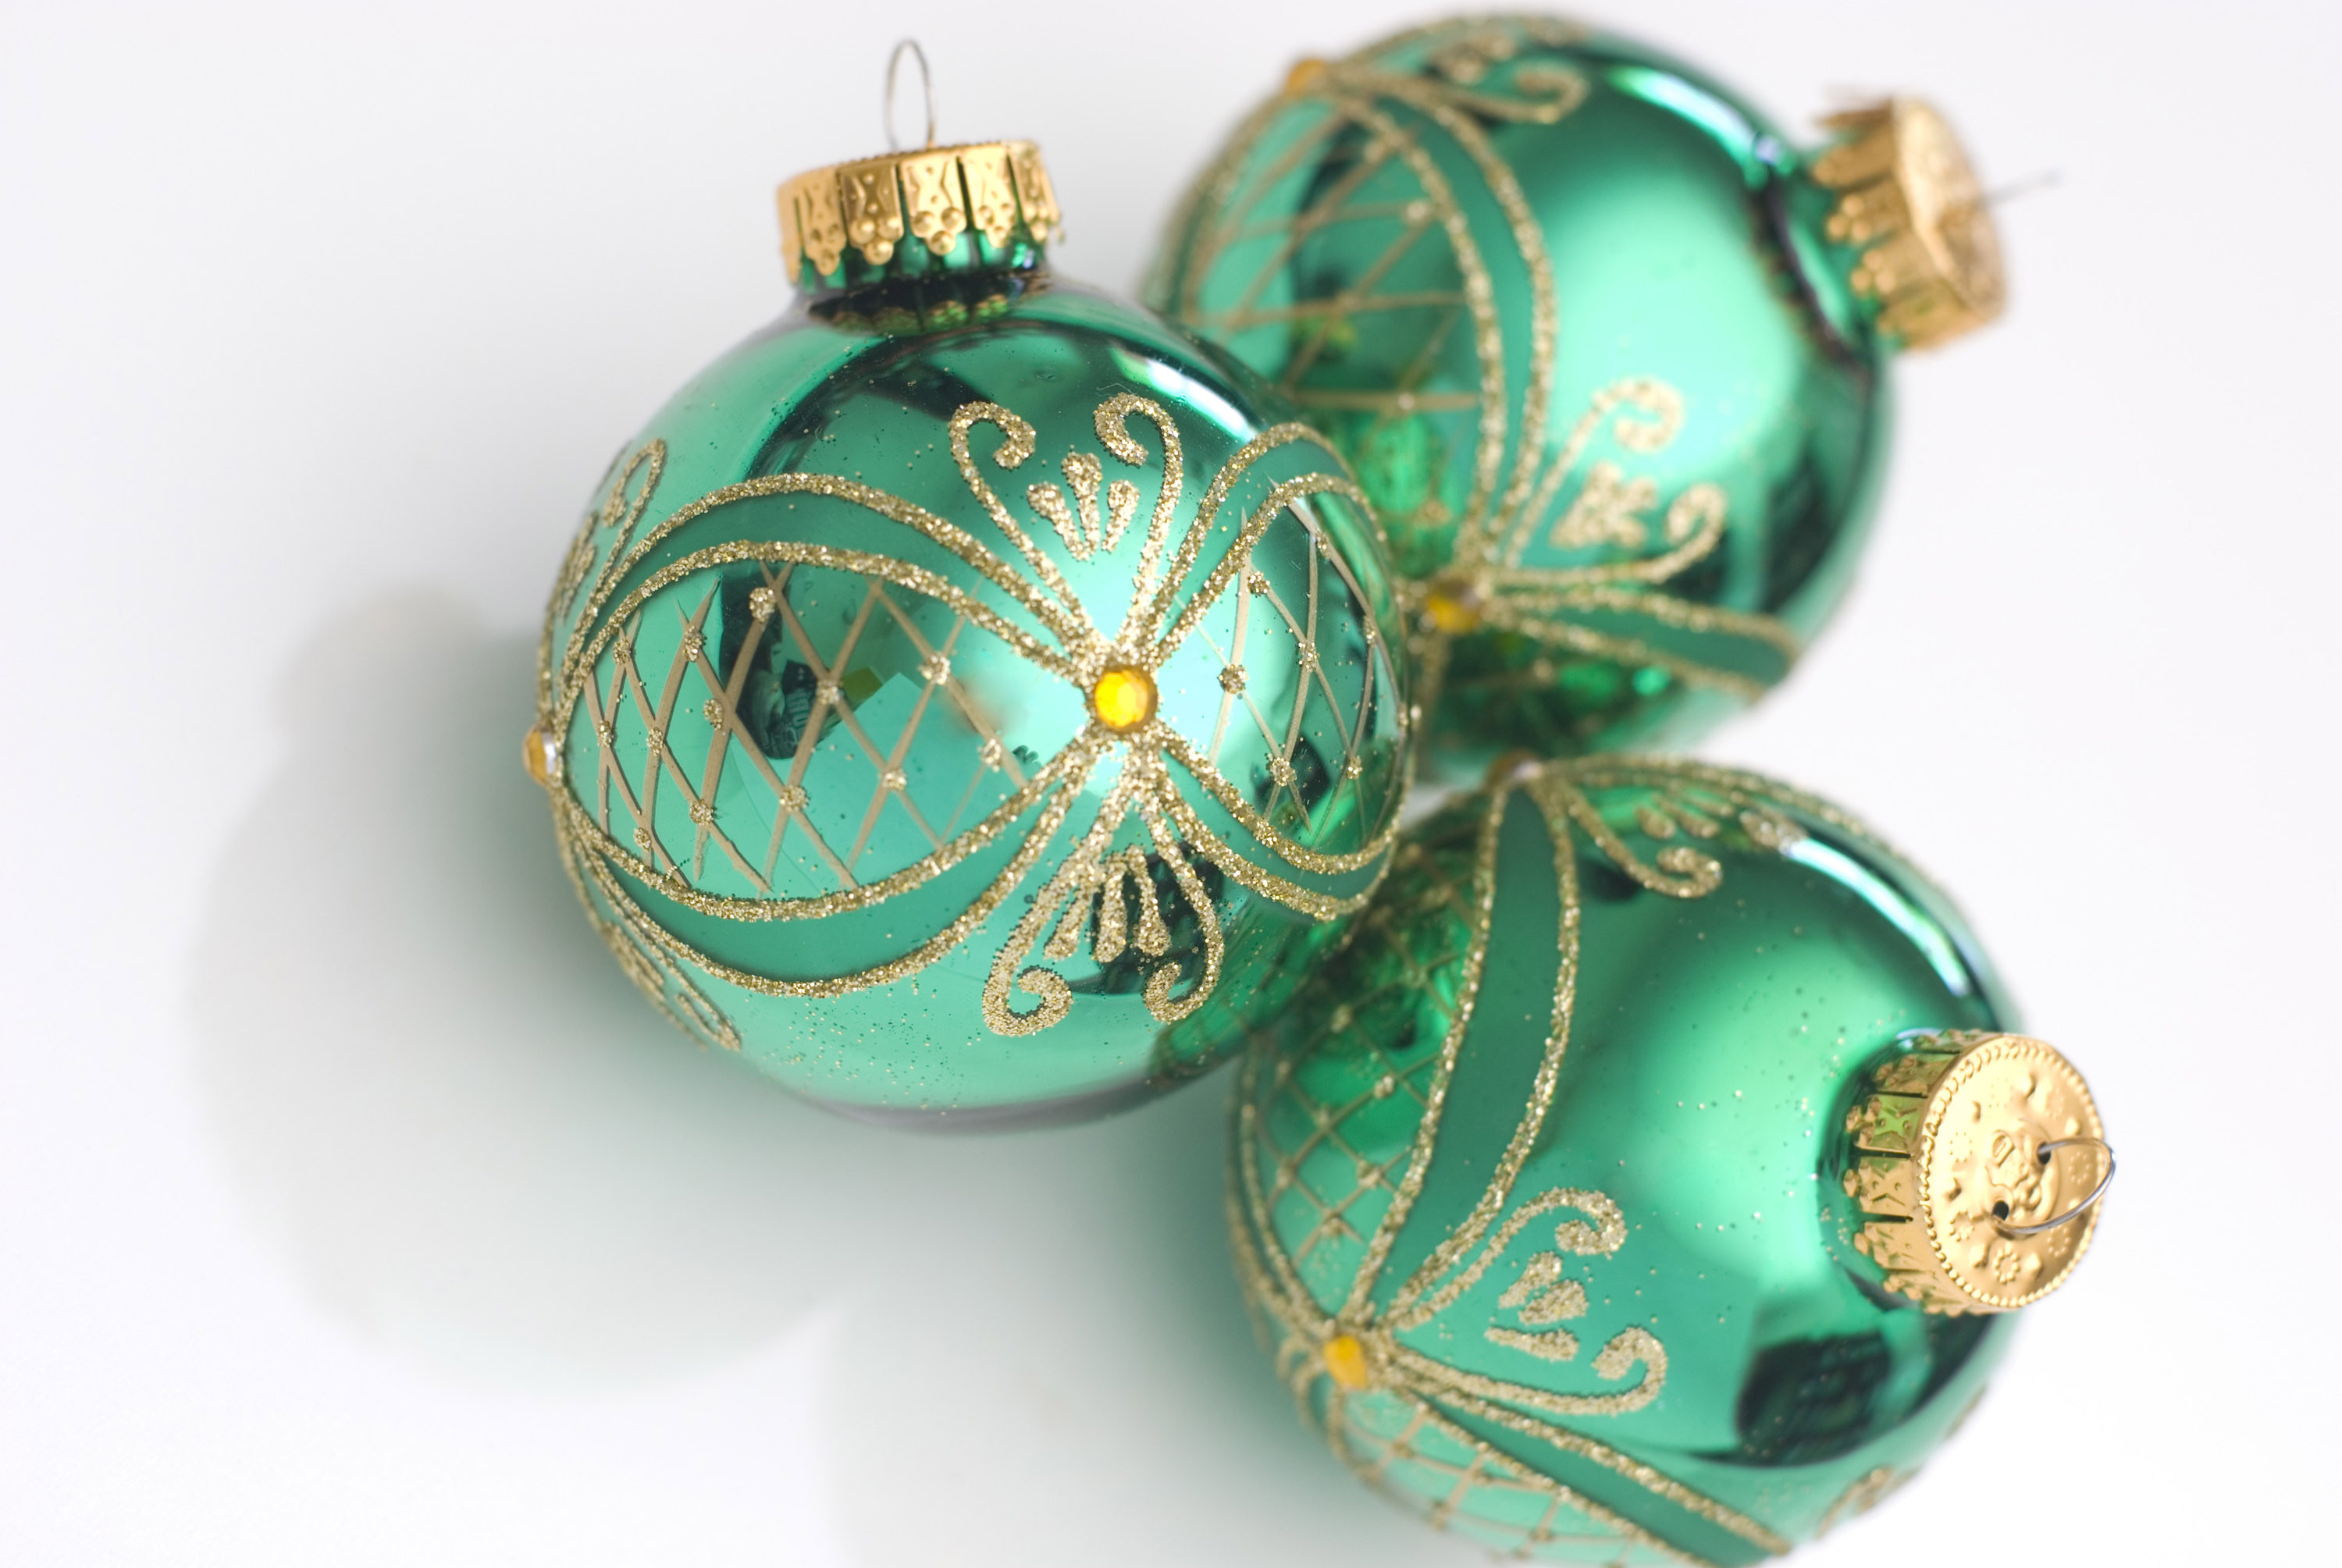 Lovely Of Green Christmas Balls Glass Christmas Decorations Of Elegant Blown Glass Christmas ornaments Glass Christmas Decorations